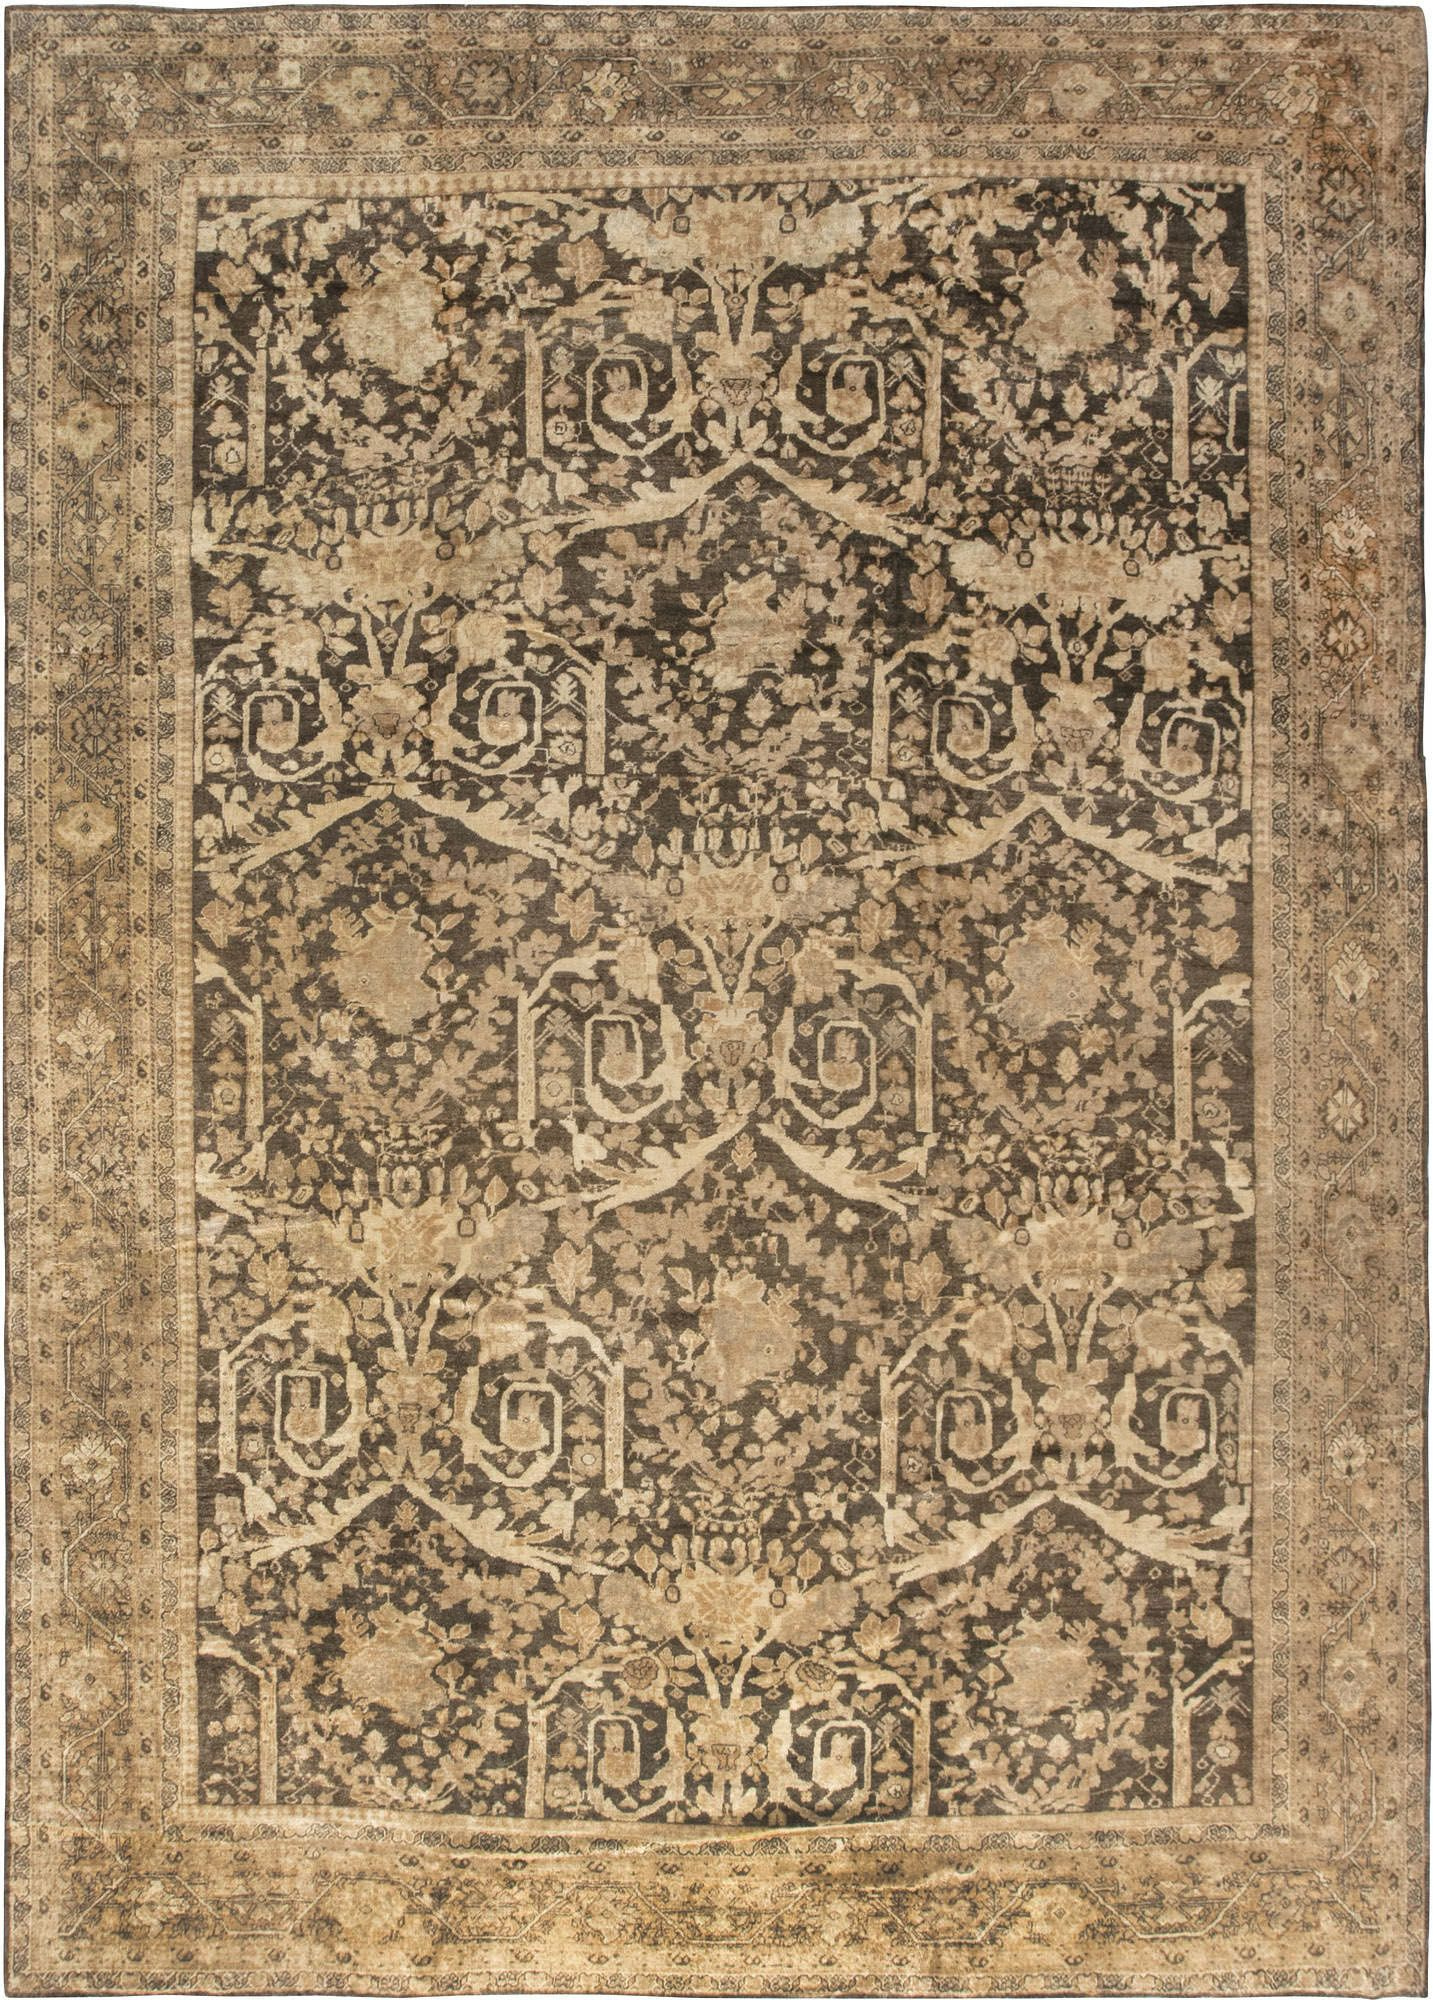 Antique Persian Sultanabad Carpet In 2020 Carpet